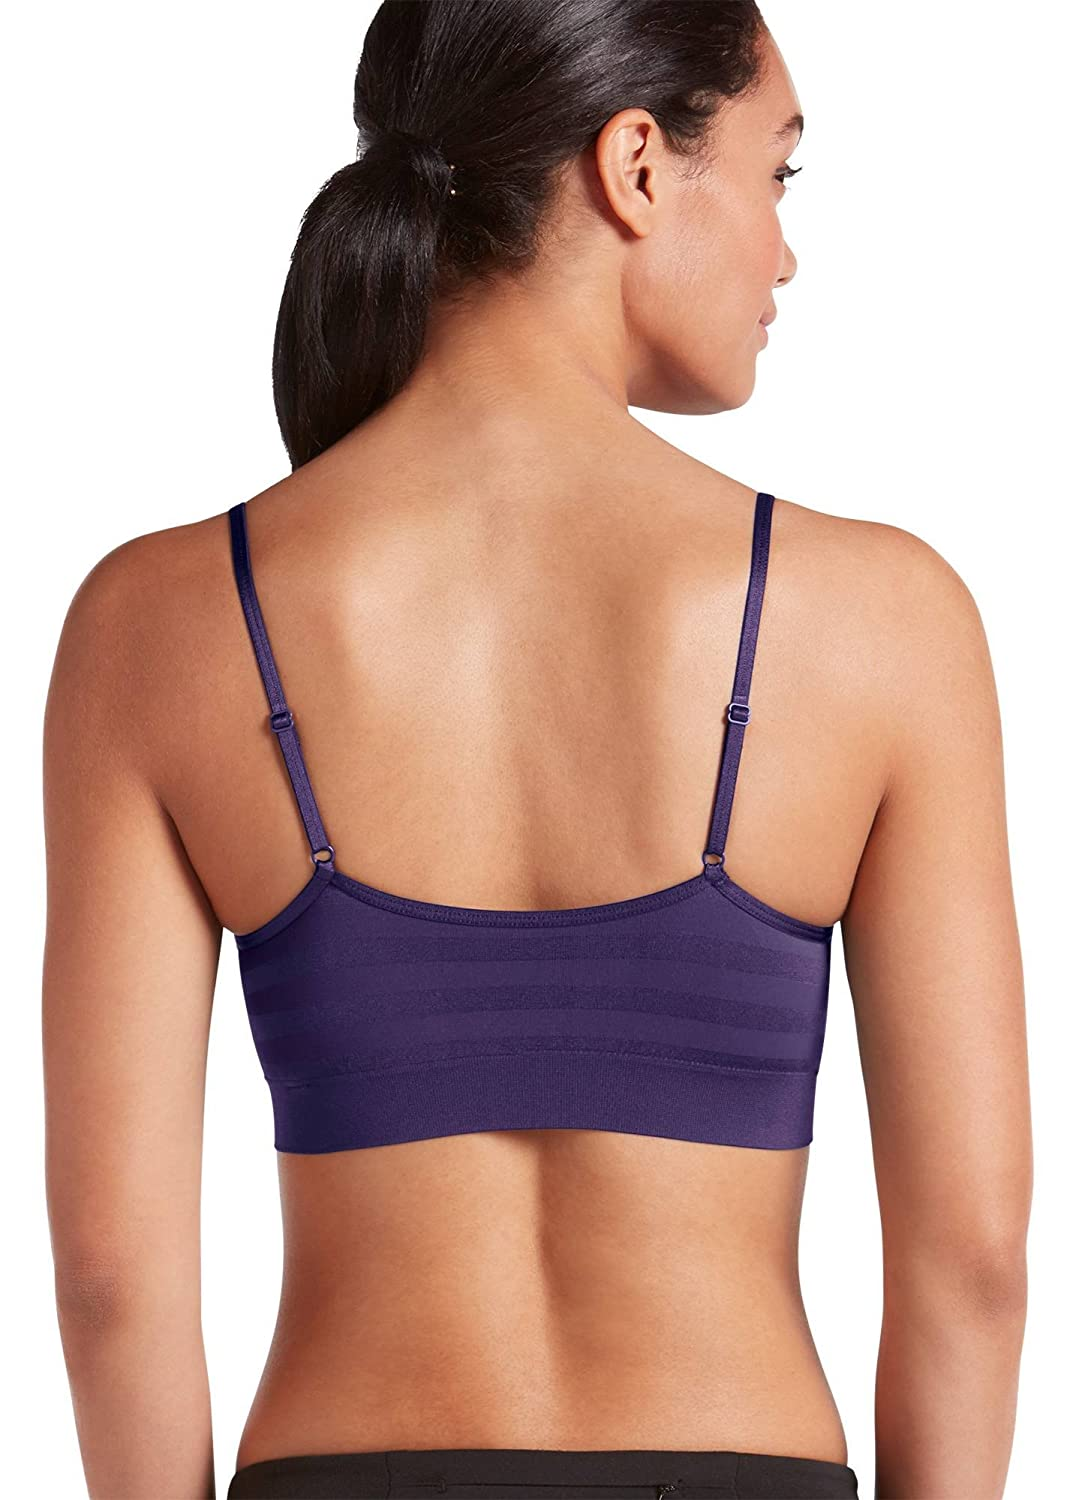 cb88a724c18dad Jockey Women s Bras Matte   Shine Seamfree Bralette at Amazon Women s  Clothing store